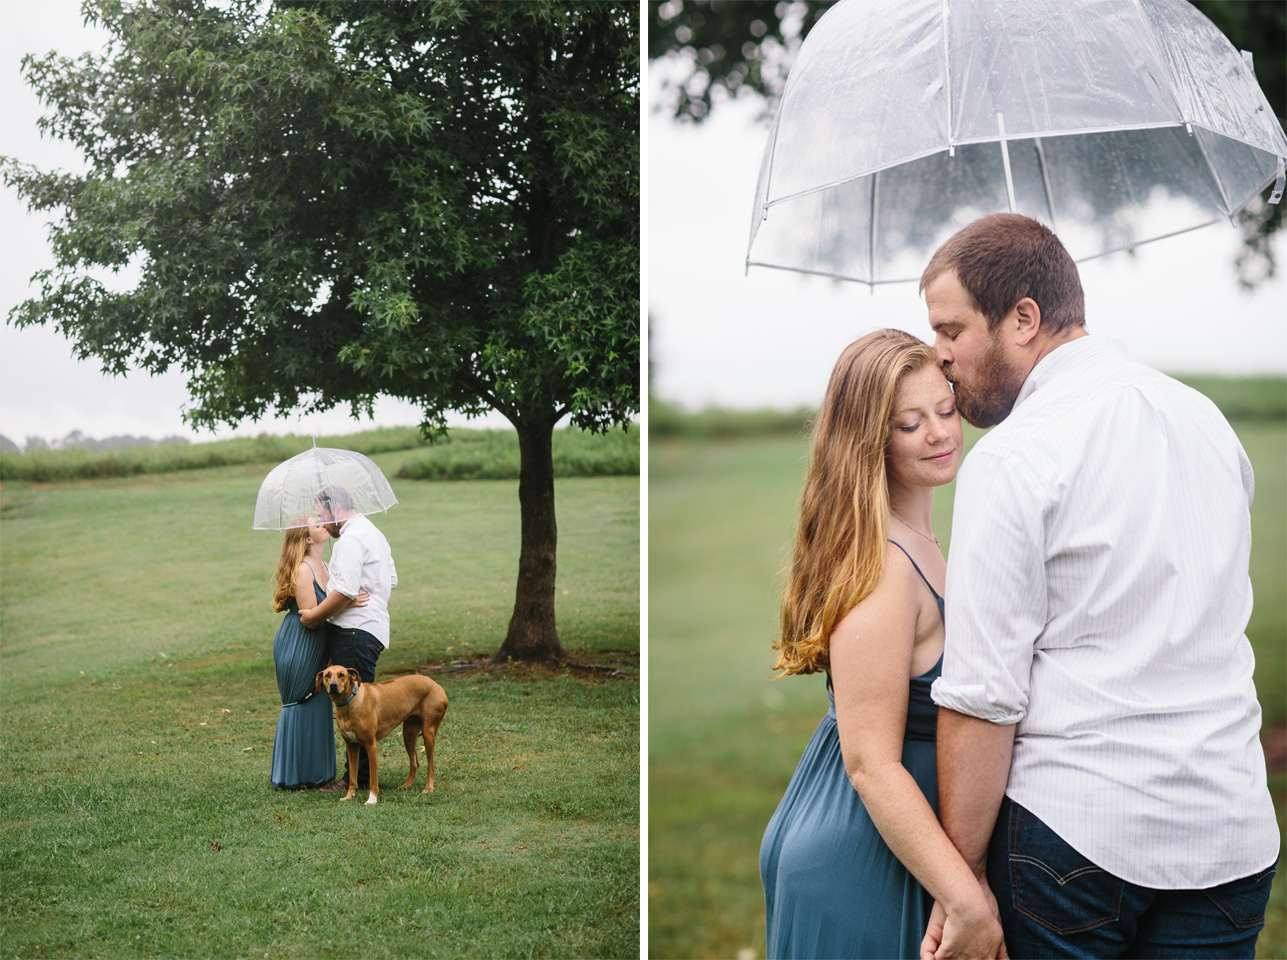 engagement photos with a dog.rainy engagement photos.rainy engagement inspiration.rainy day.e carroll joyner park.jpg